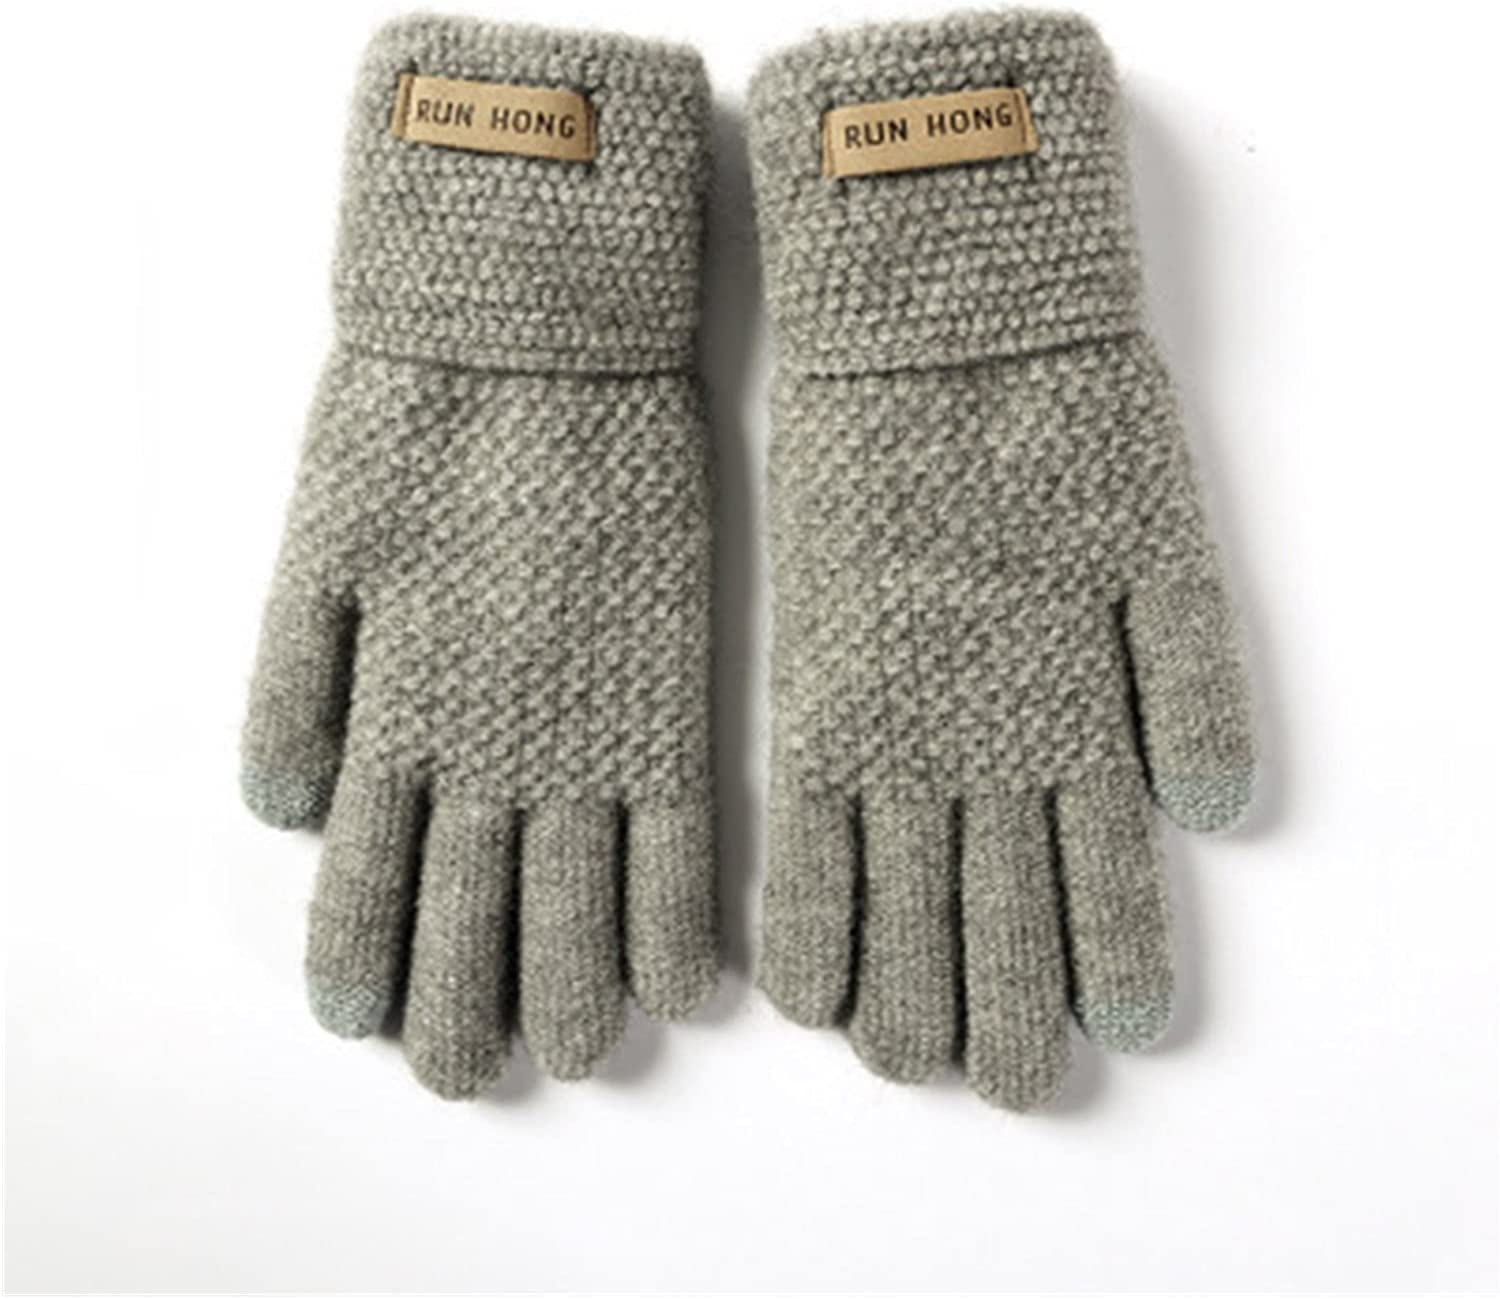 JSJJAWS Winter Gloves Unisex Winter Thicken Twist Flower Knit Touch Screen Mittens Female Cashmere Elastic Nonslip Cycling Driving Gloves (Color : B Light Gray, Gloves Size : One Size)